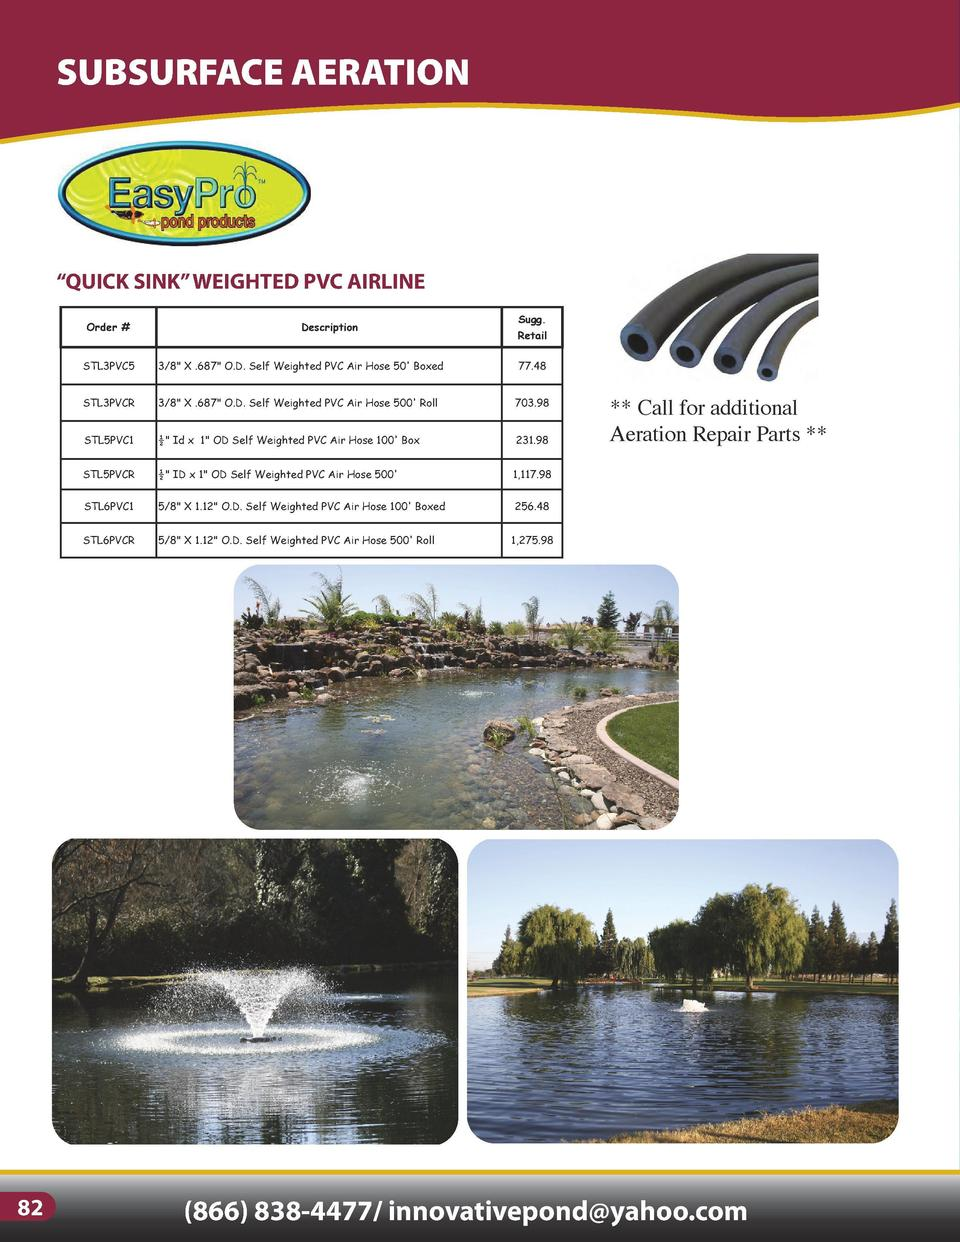 SUBSURFACE AERATION  SURFACE AERATION   FOUNTAINS Fountains  Aerators  Circulators  De-Icers Industrial Strength, enerfy e...